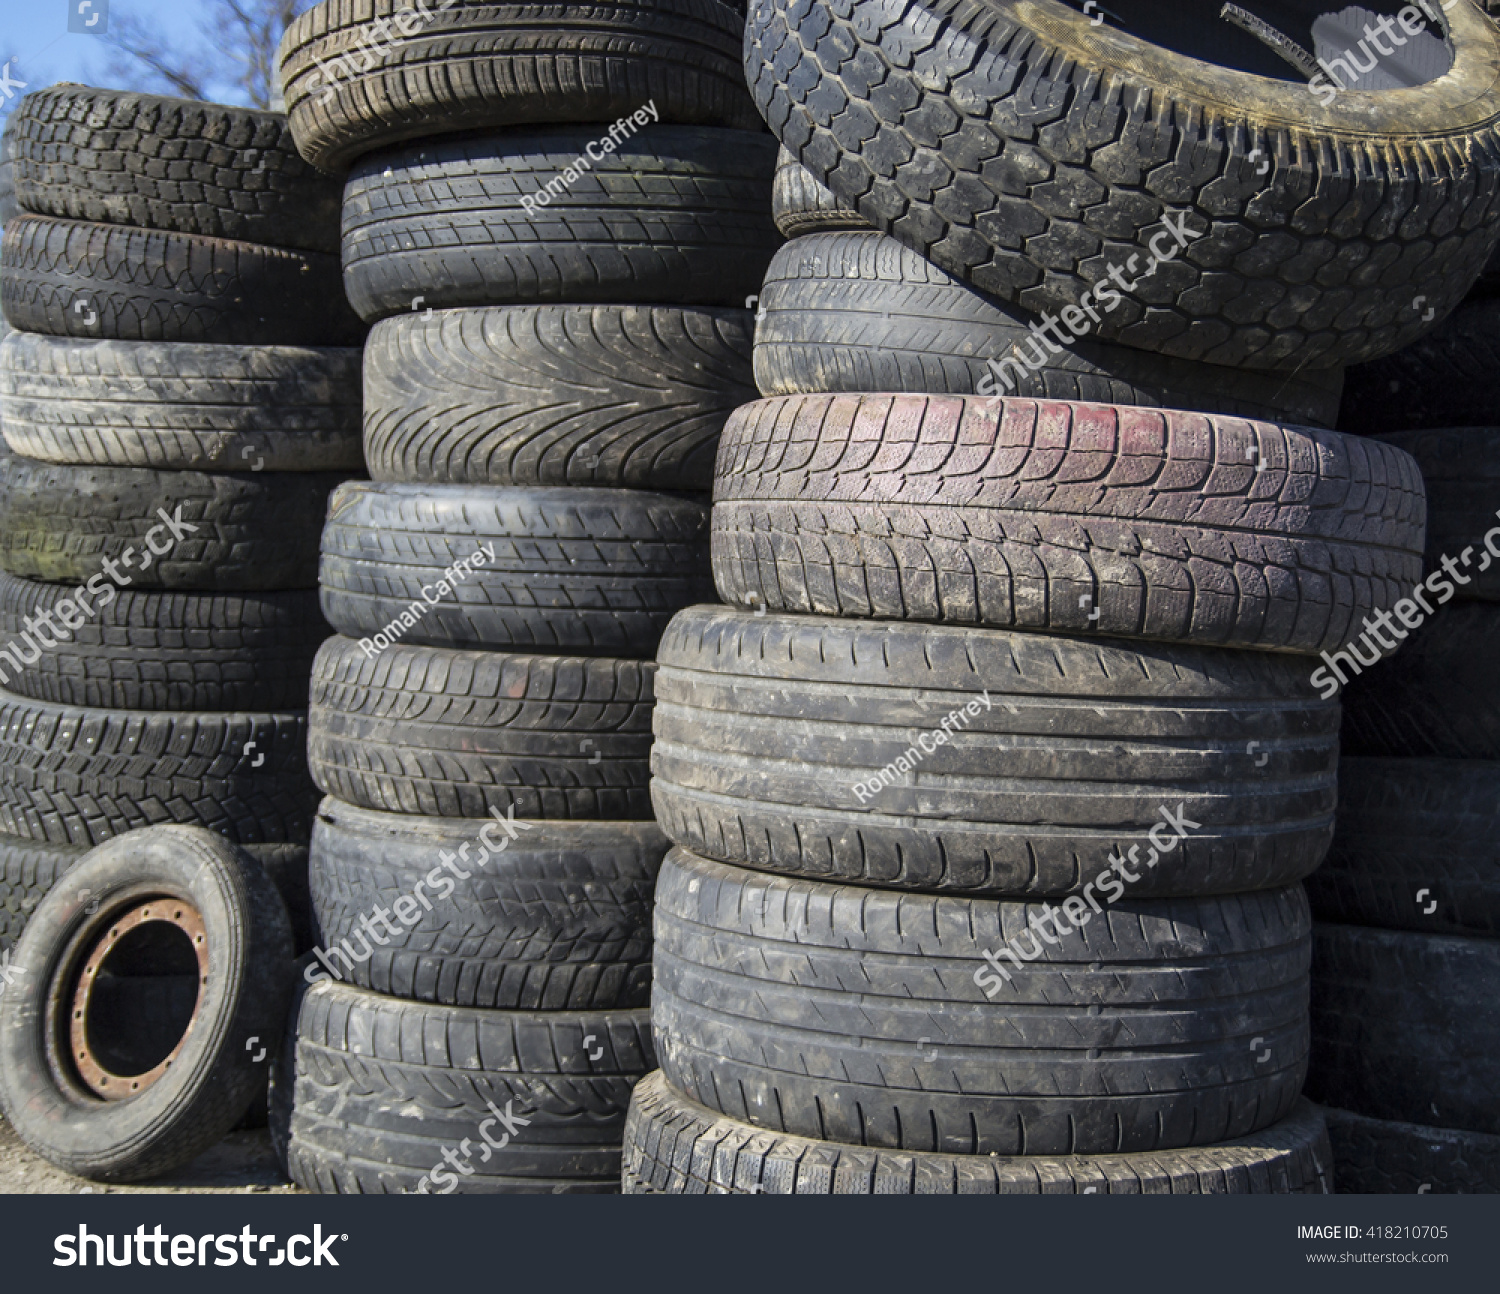 a pile of used car tires stacked in a tower